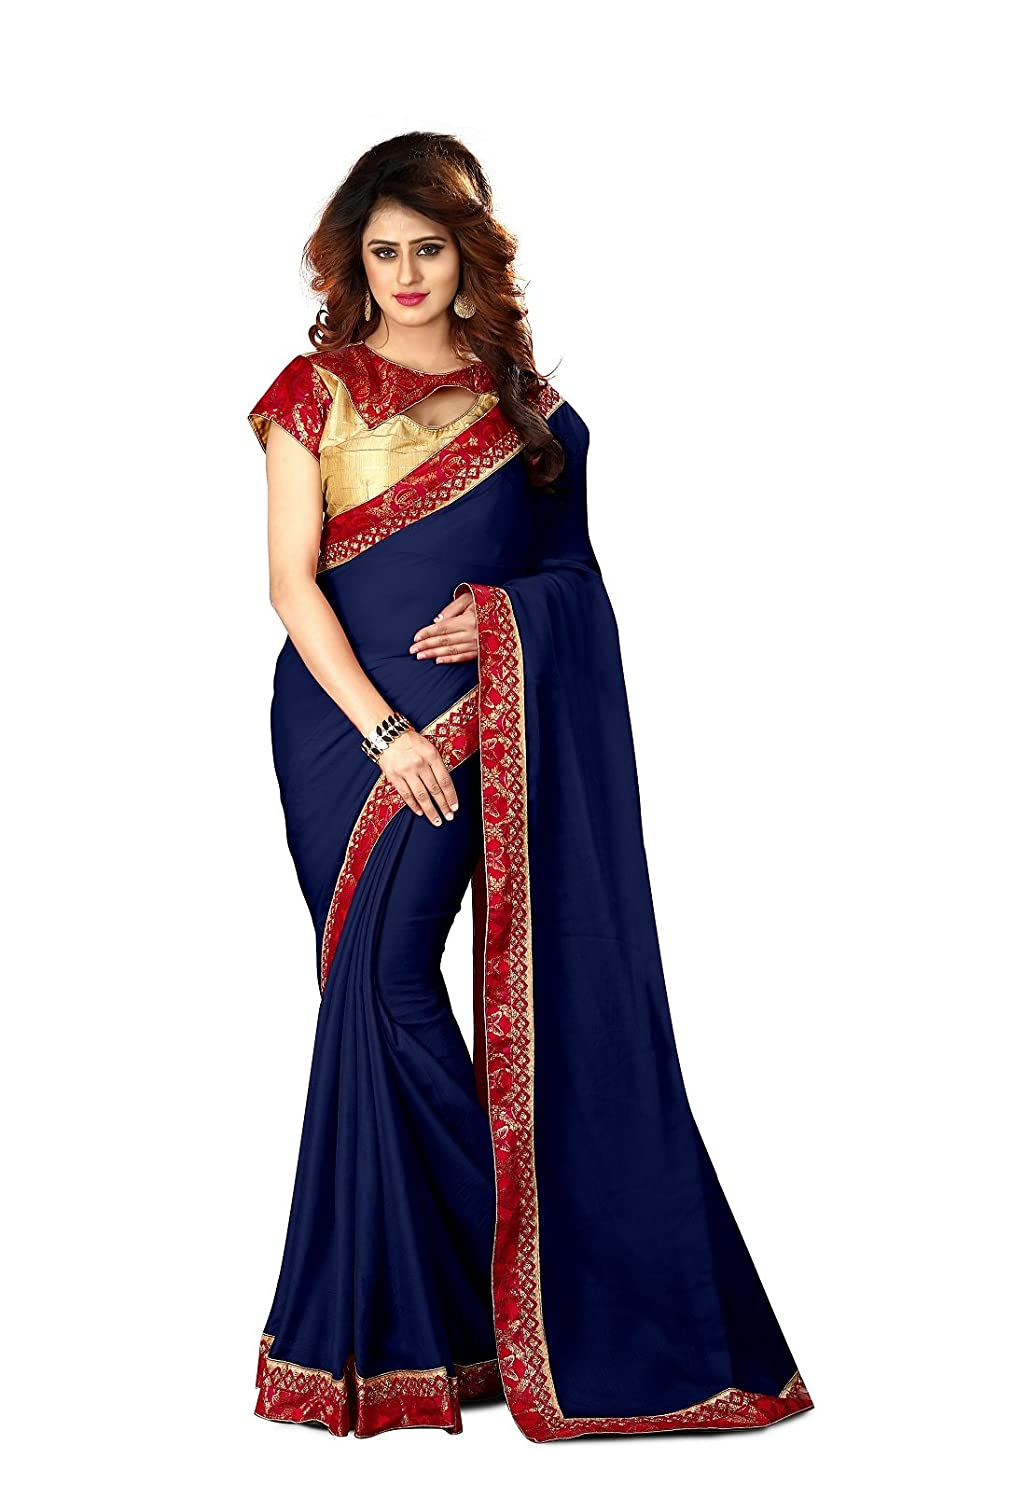 F4style Women's Designer Moss Chiffon Saree with Unstitched Blouse Piece